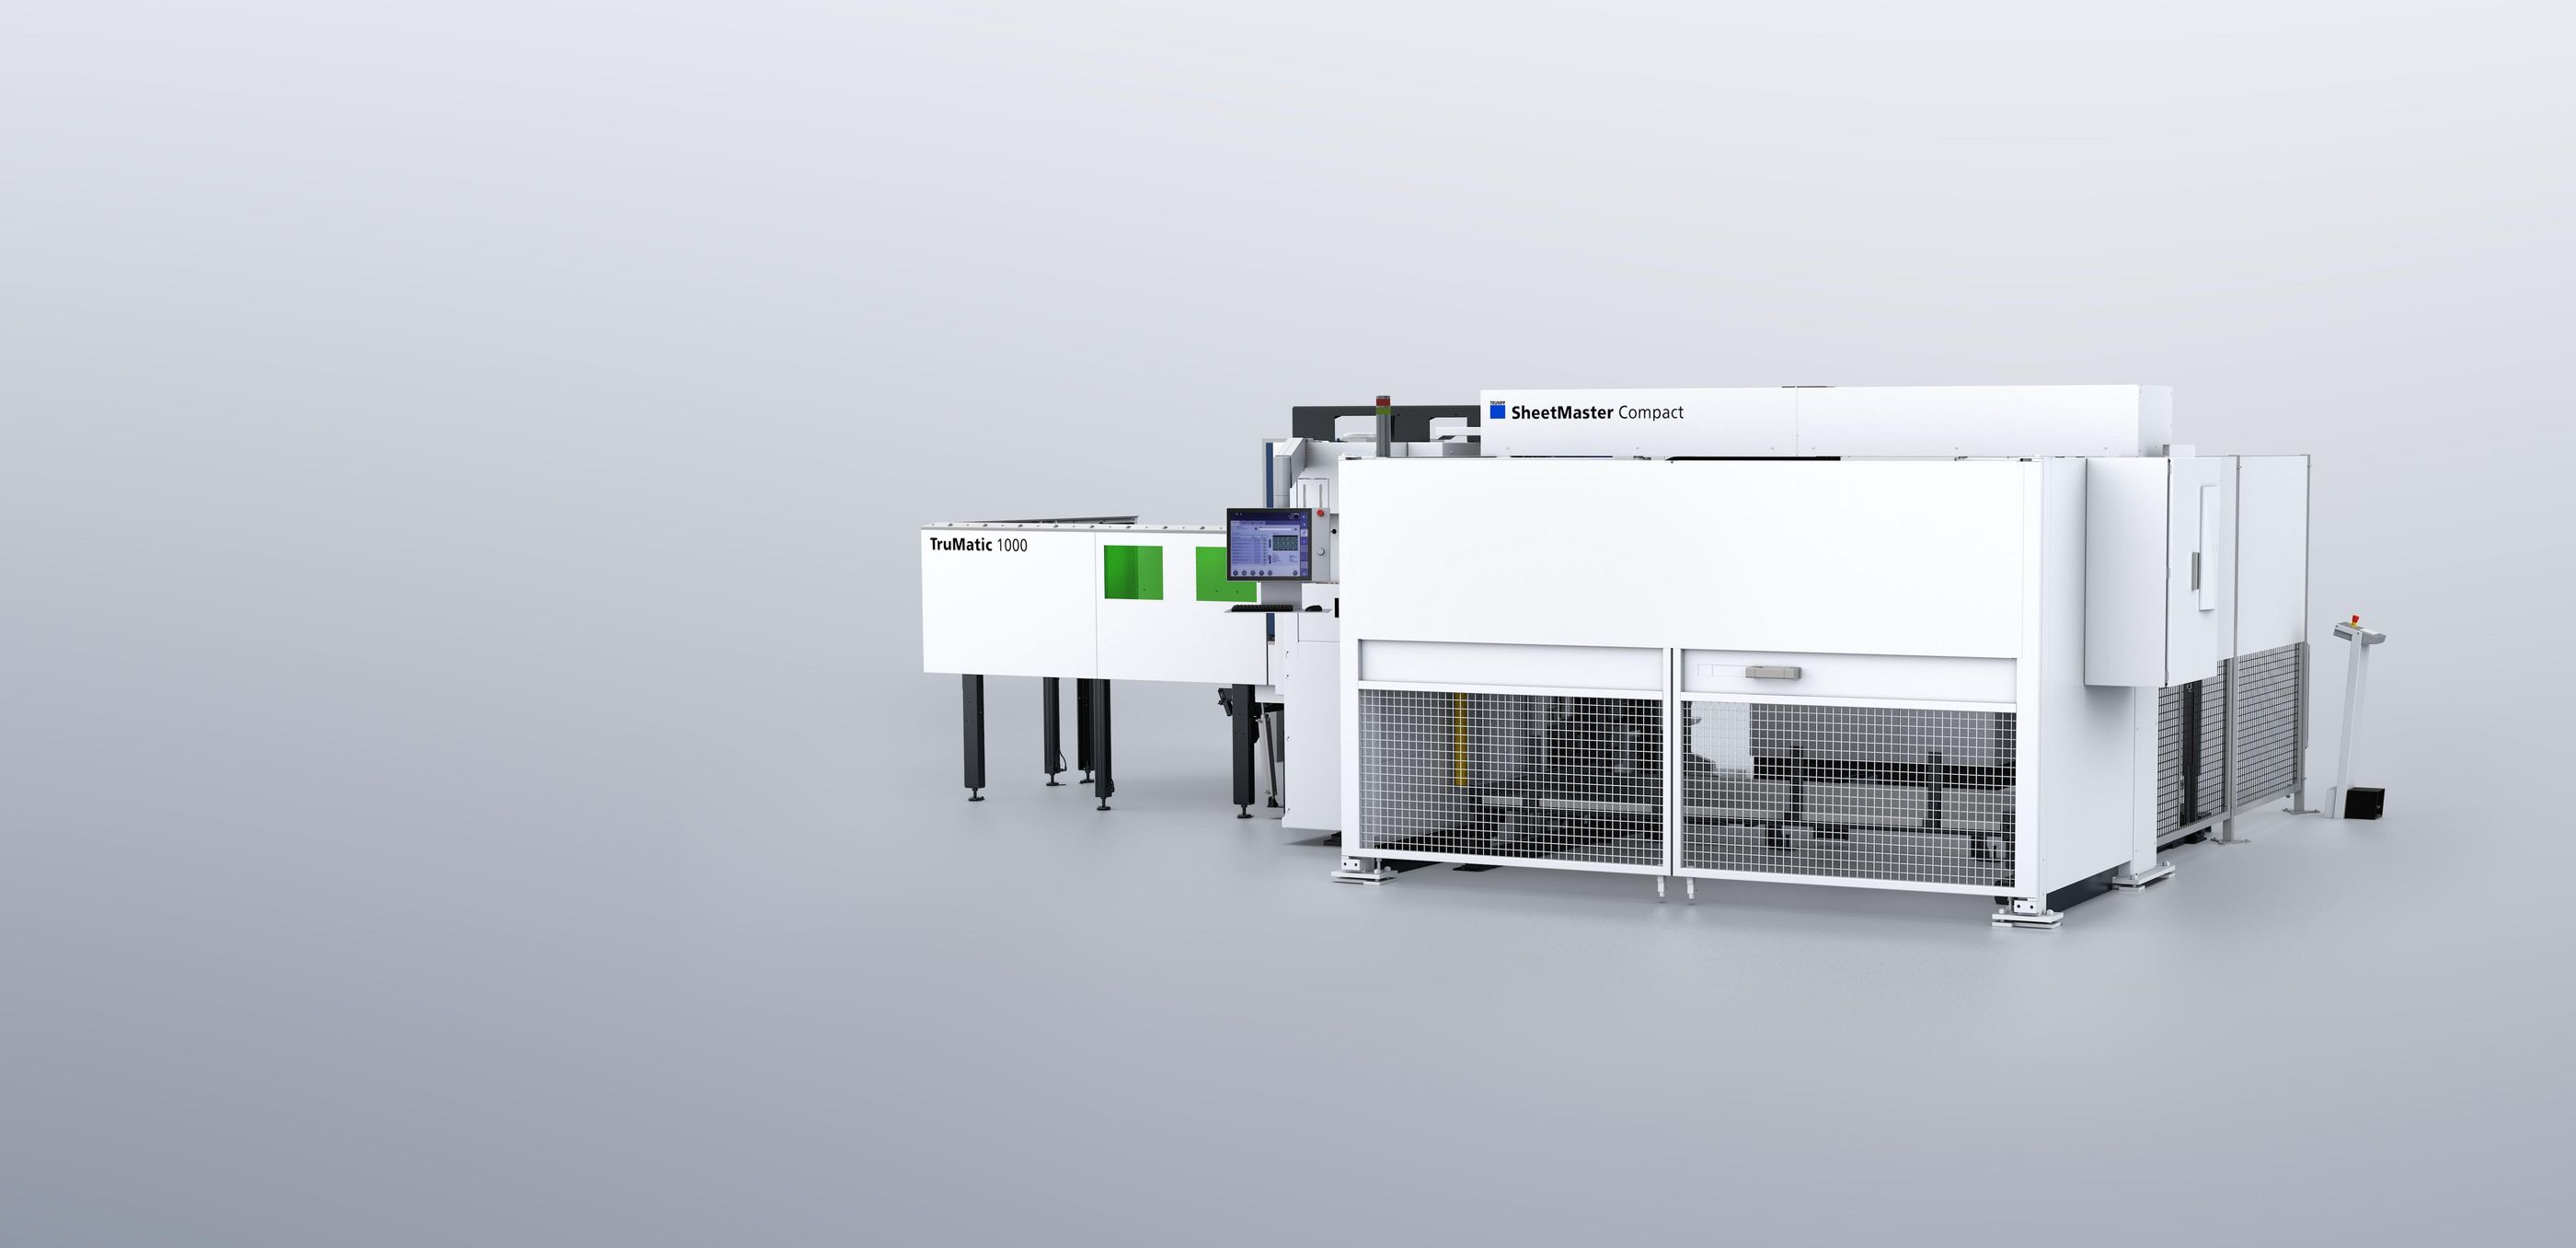 TruMatic 1000 fiber ve SheetMaster Compact